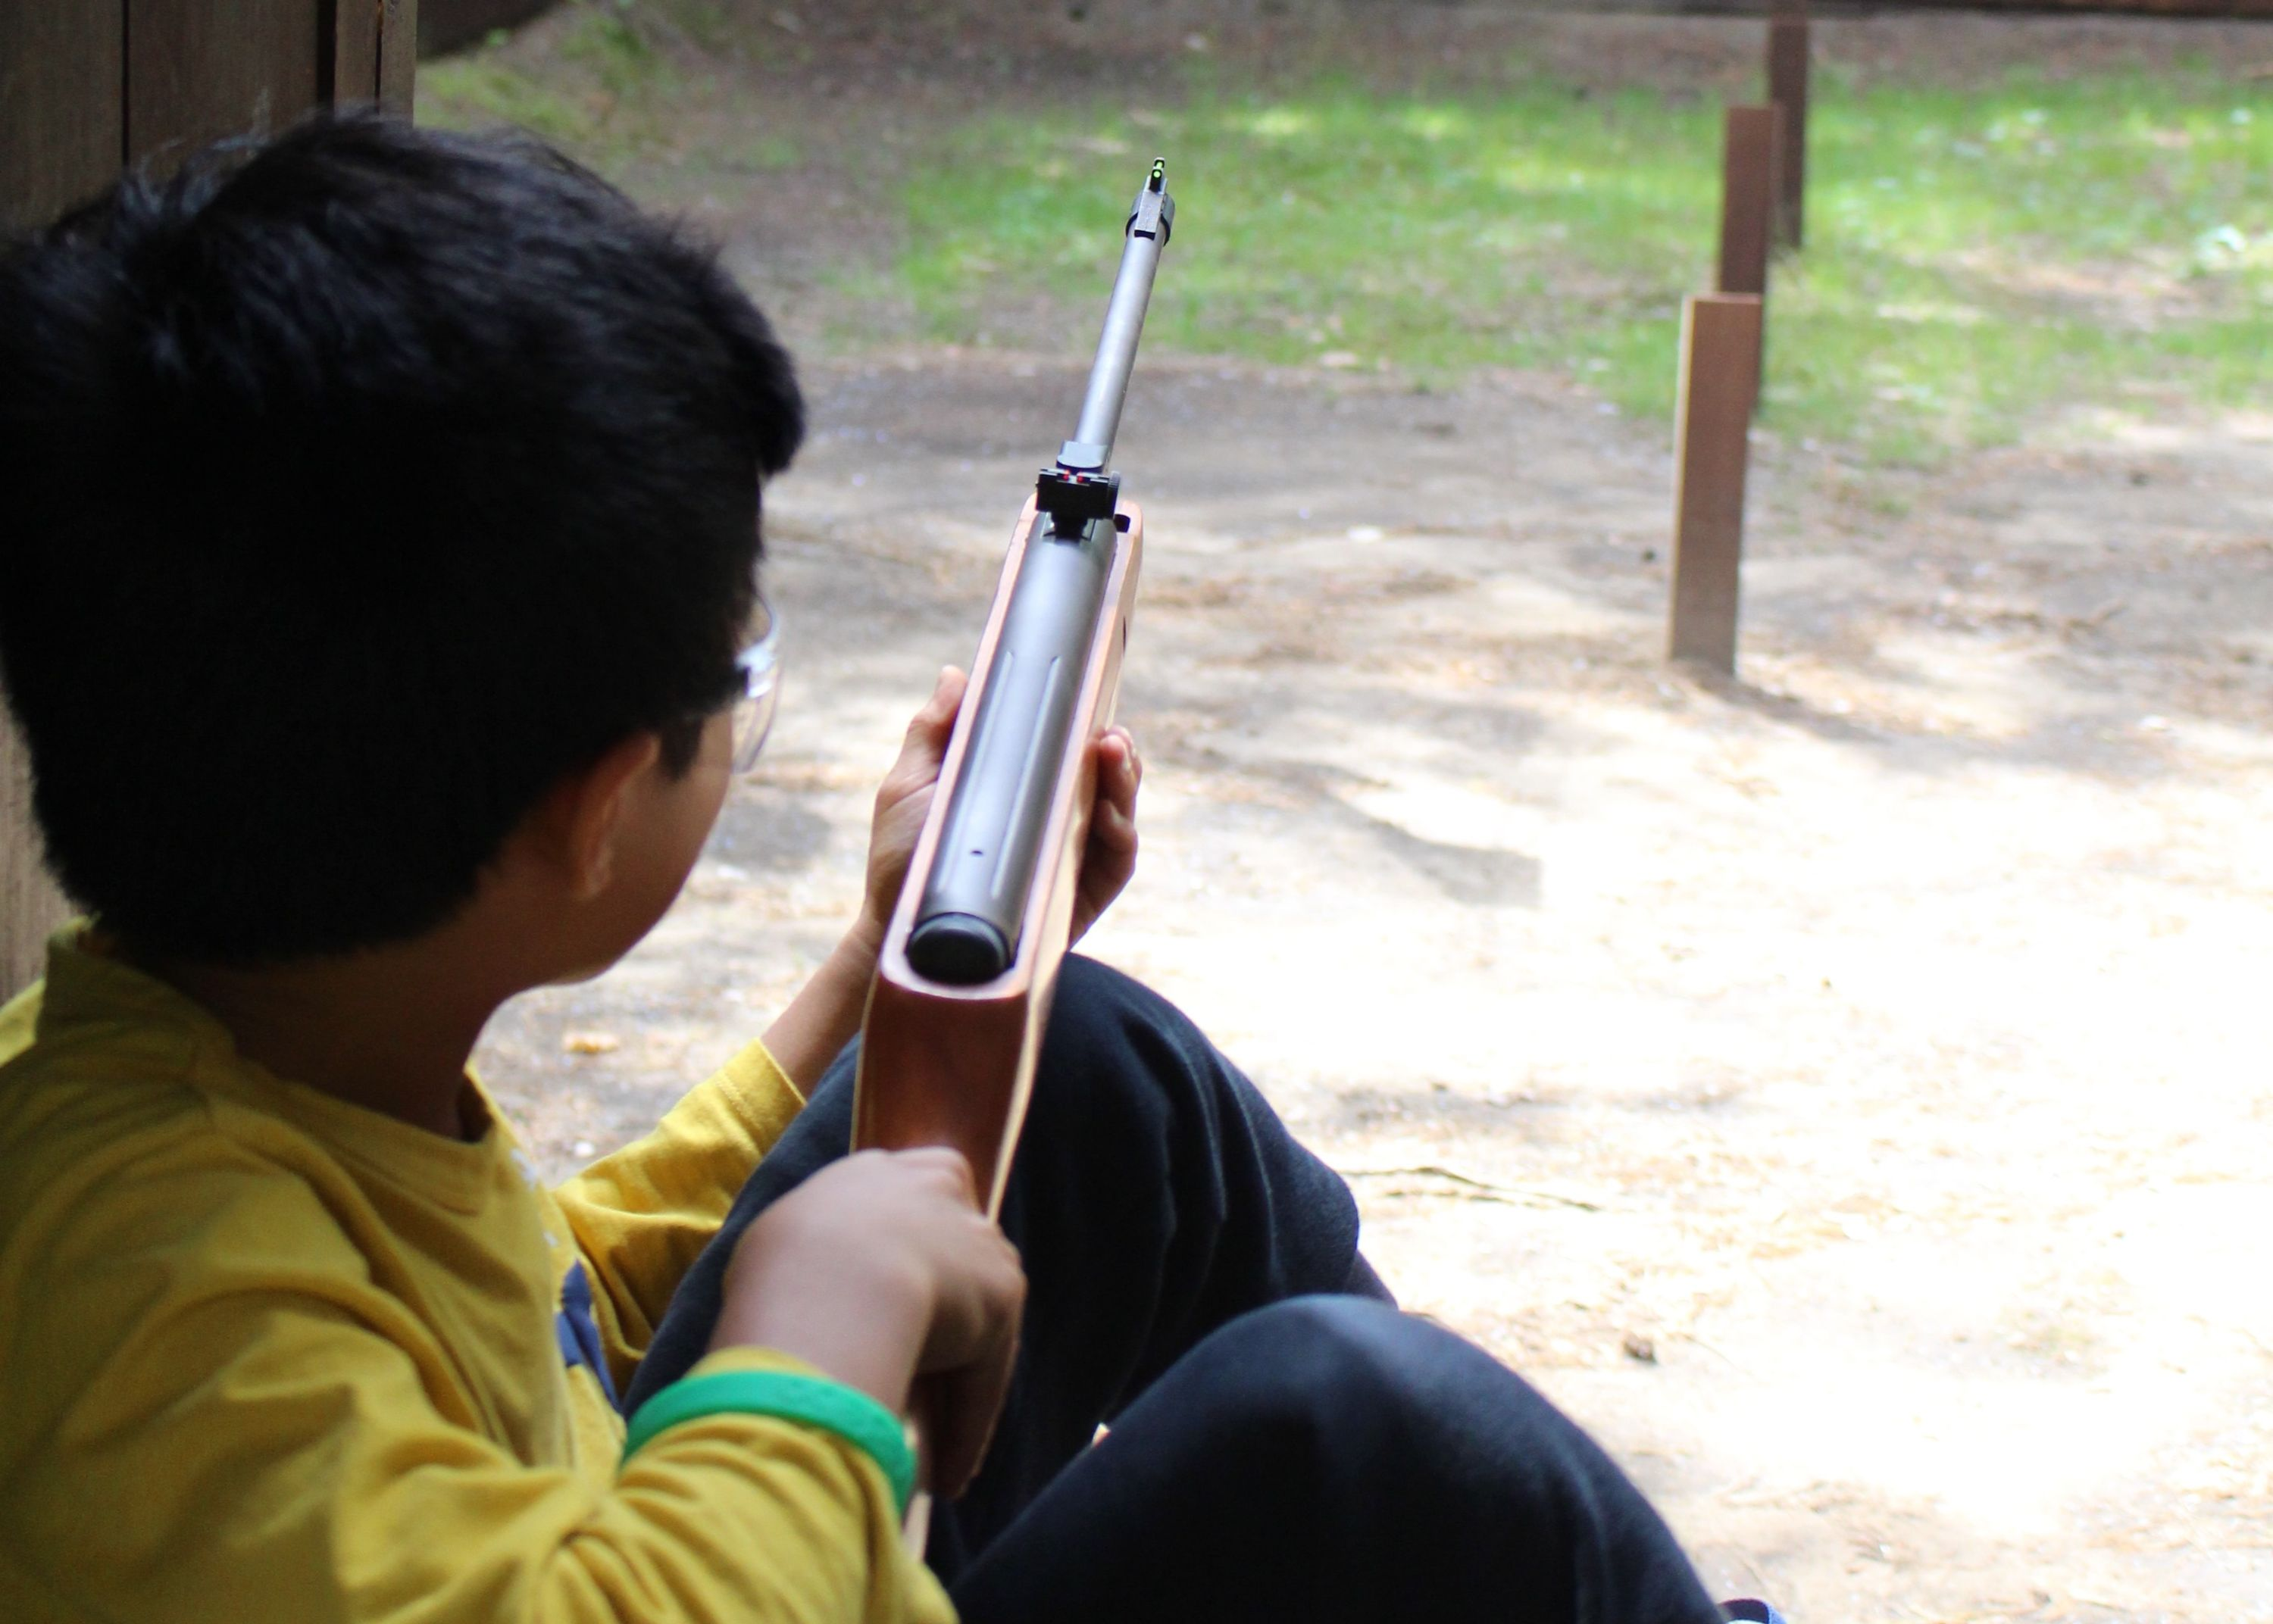 Camper enjoying riflery outside at Adventure Summer Camp